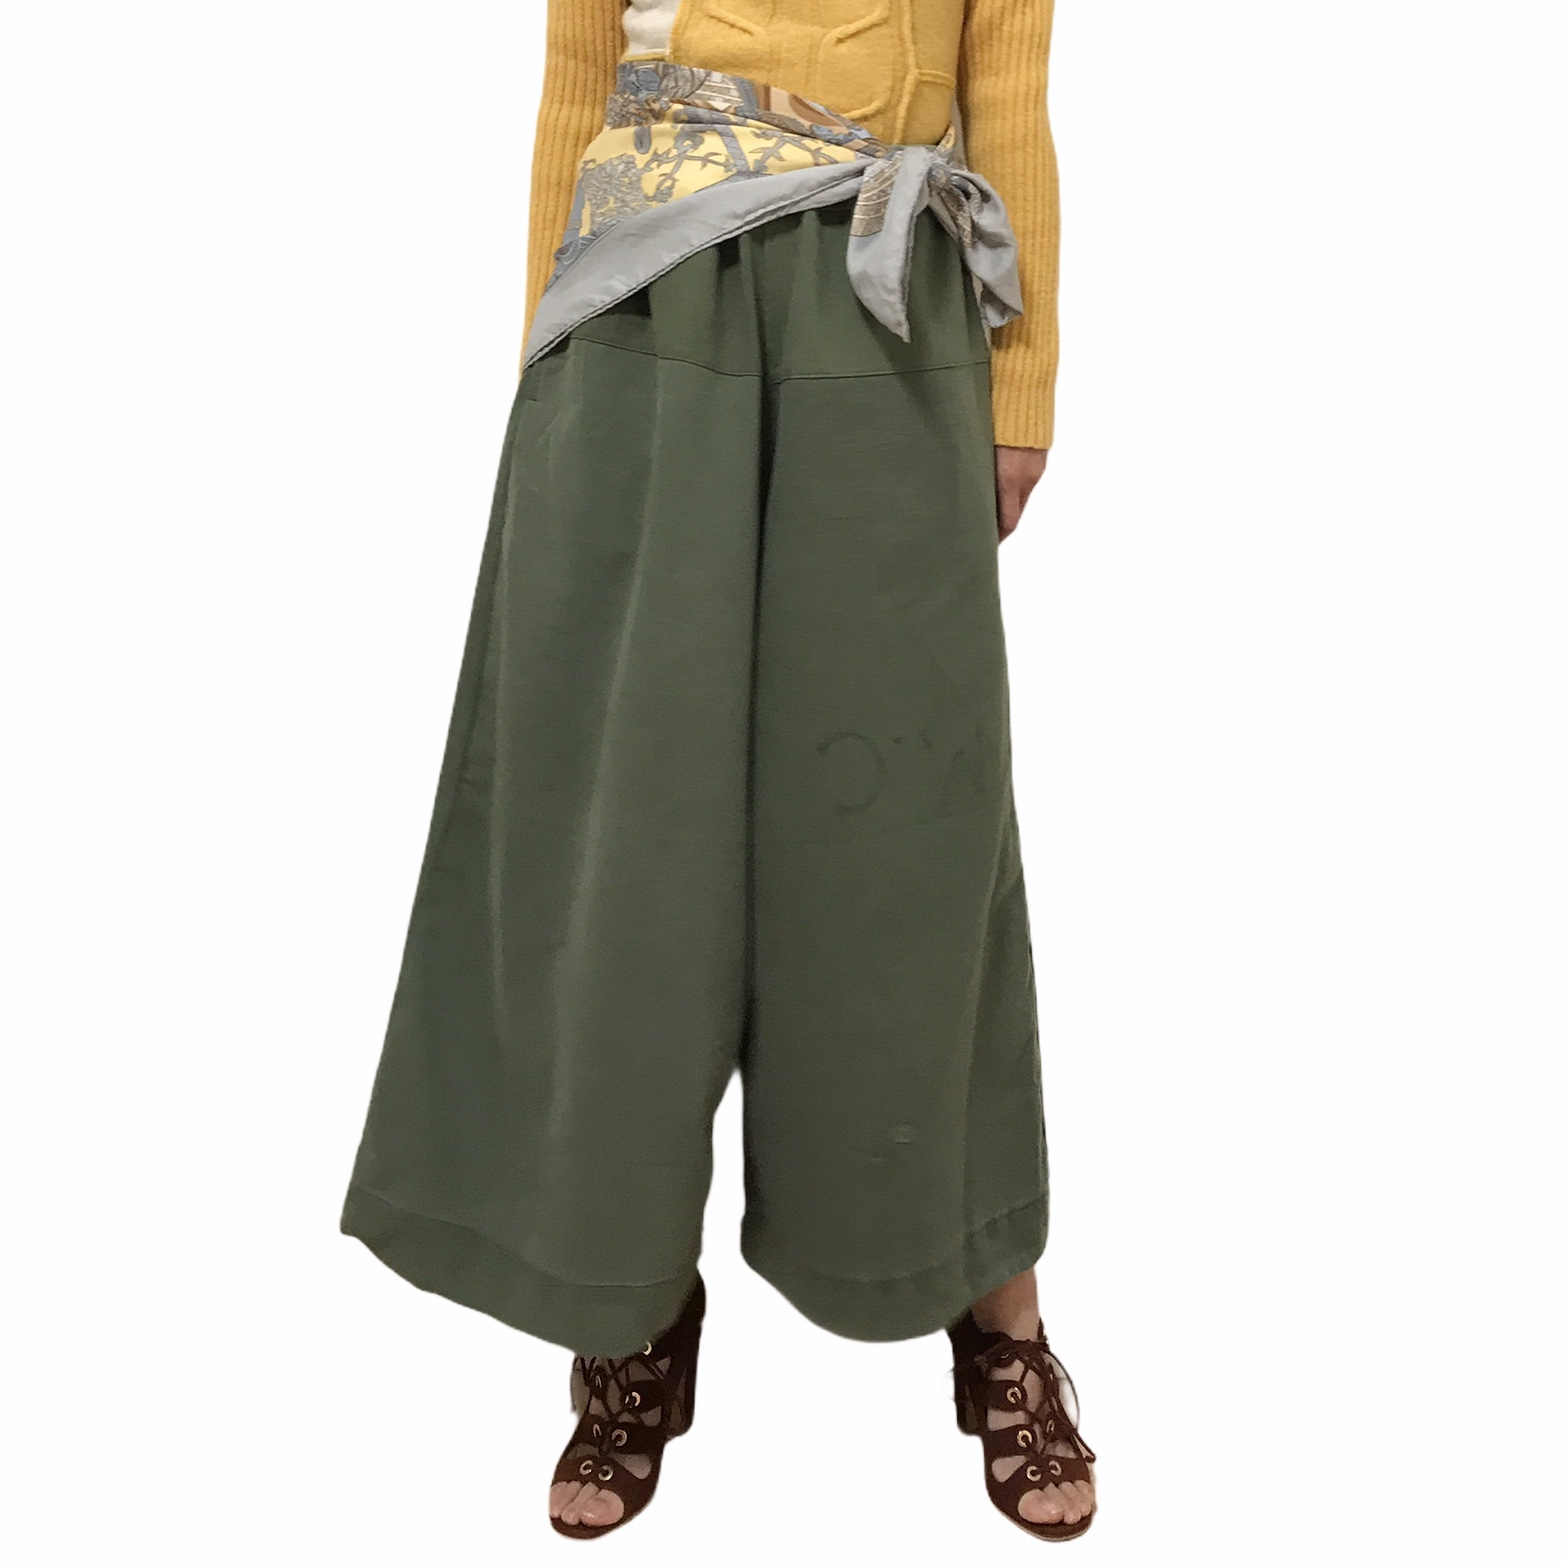 LIOT U.S.ARMY Laundry Bag Docking Easy Pants for Women